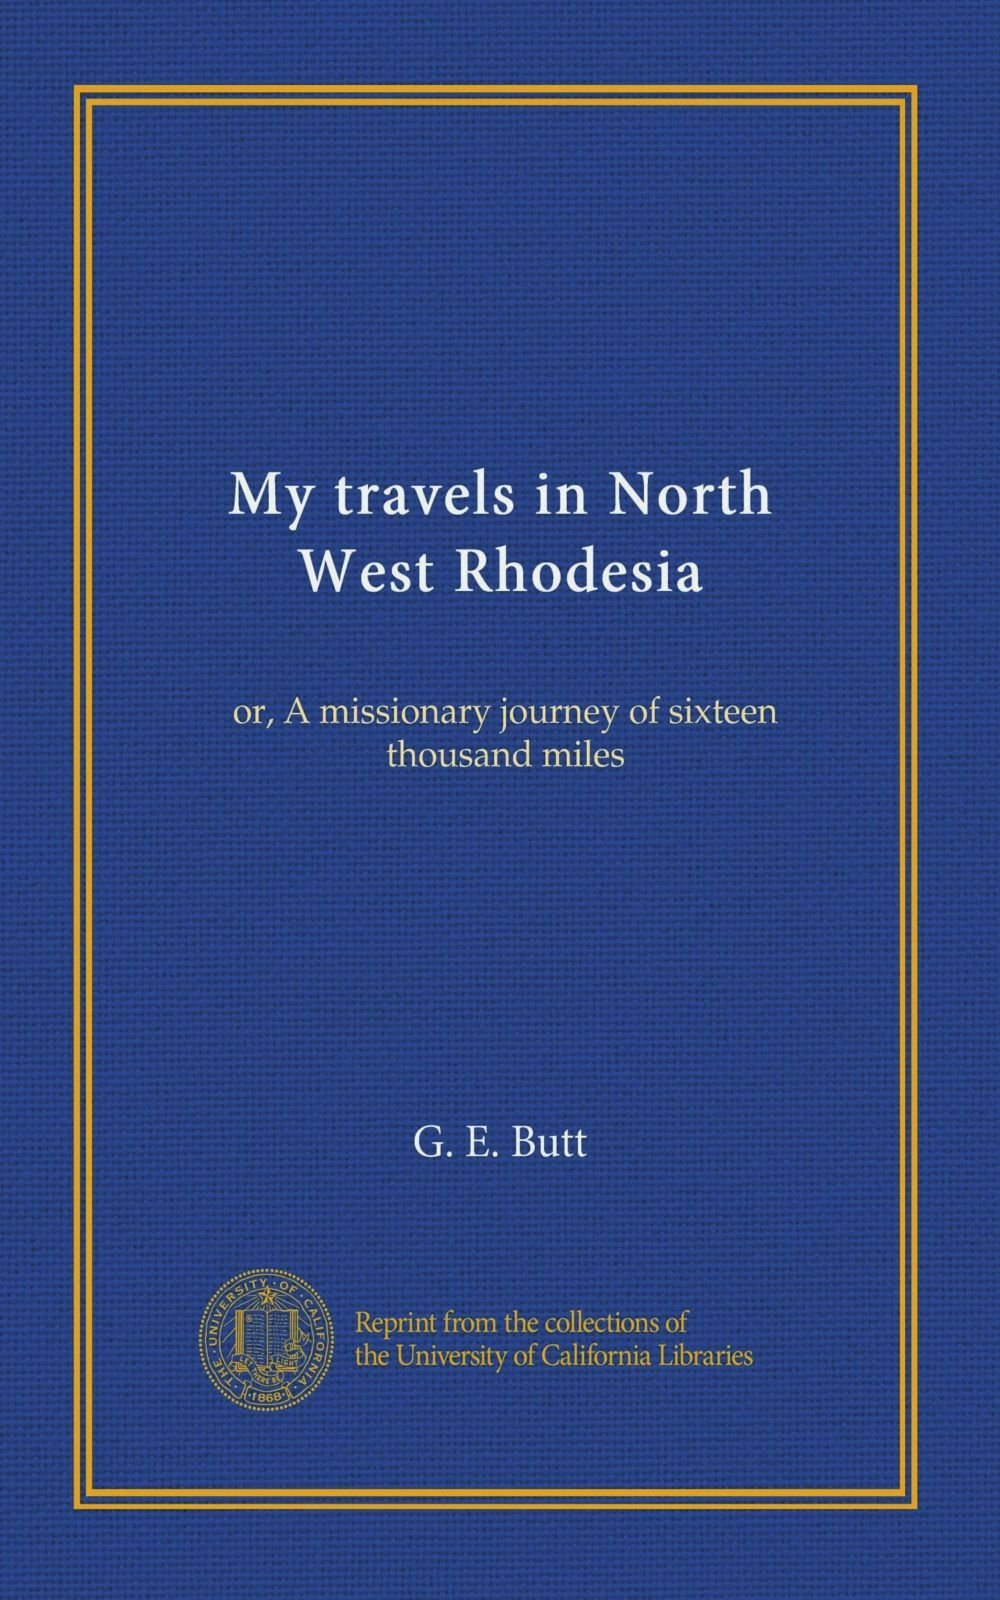 My travels in North West Rhodesia: or, A missionary journey of sixteen  thousand miles Paperback – January 1, 1910